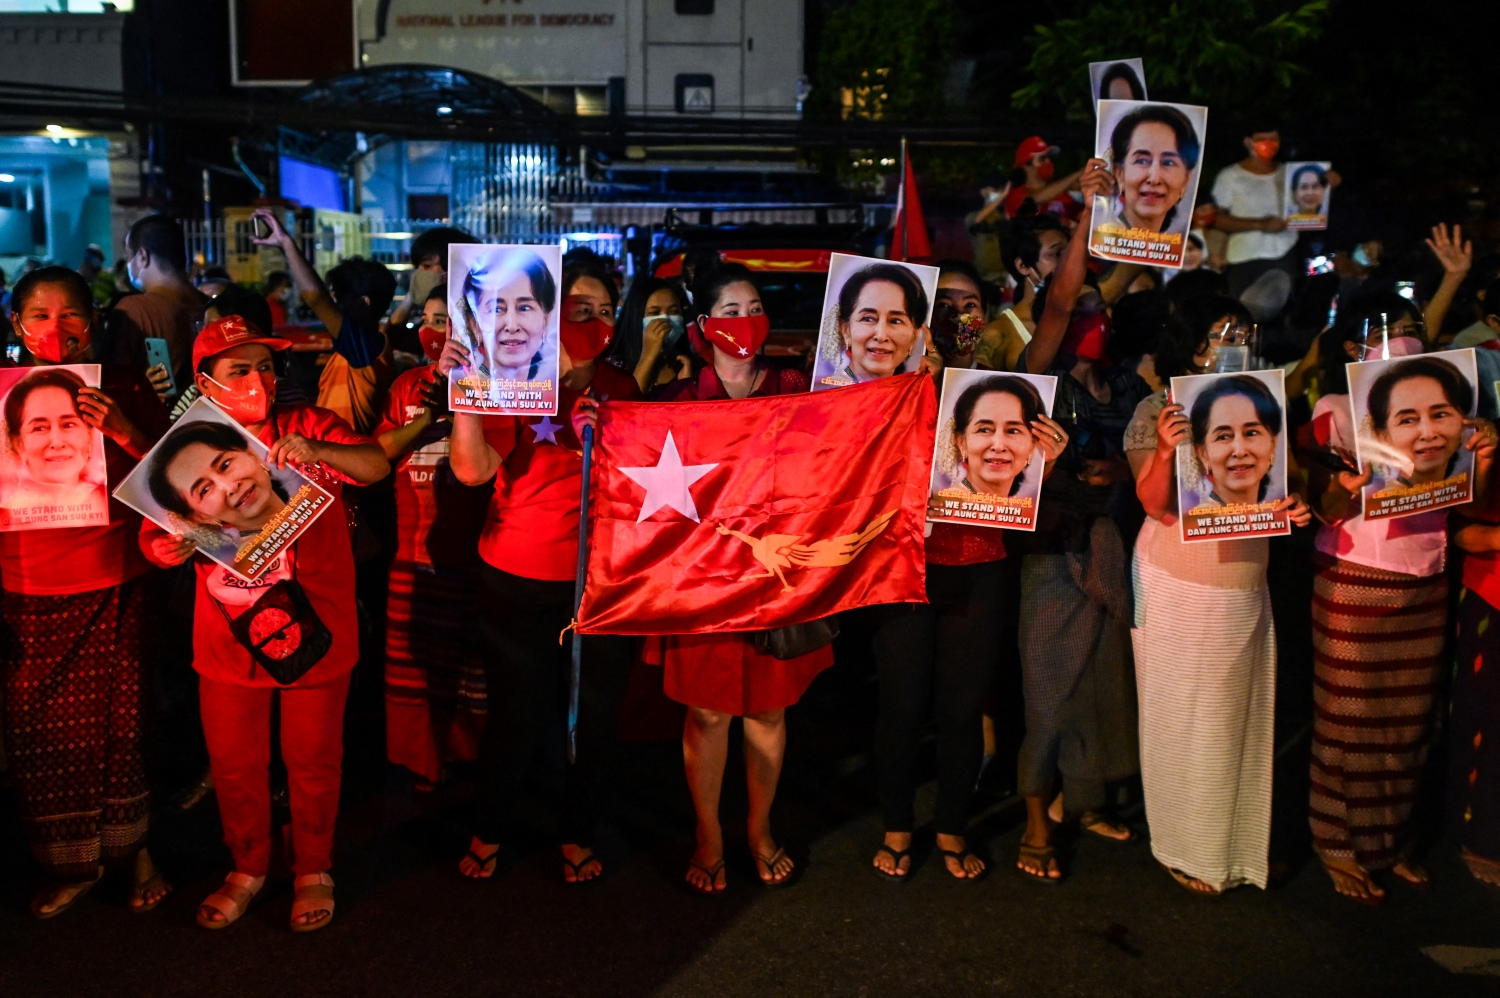 Supporters of the National League for Democracy hold portraits of party leader Daw Aung San Suu Kyi as they celebrate the NLD's 2020 election victory outside its headquarters in Yangon on November 9 last year, a day after the vote. (AFP)